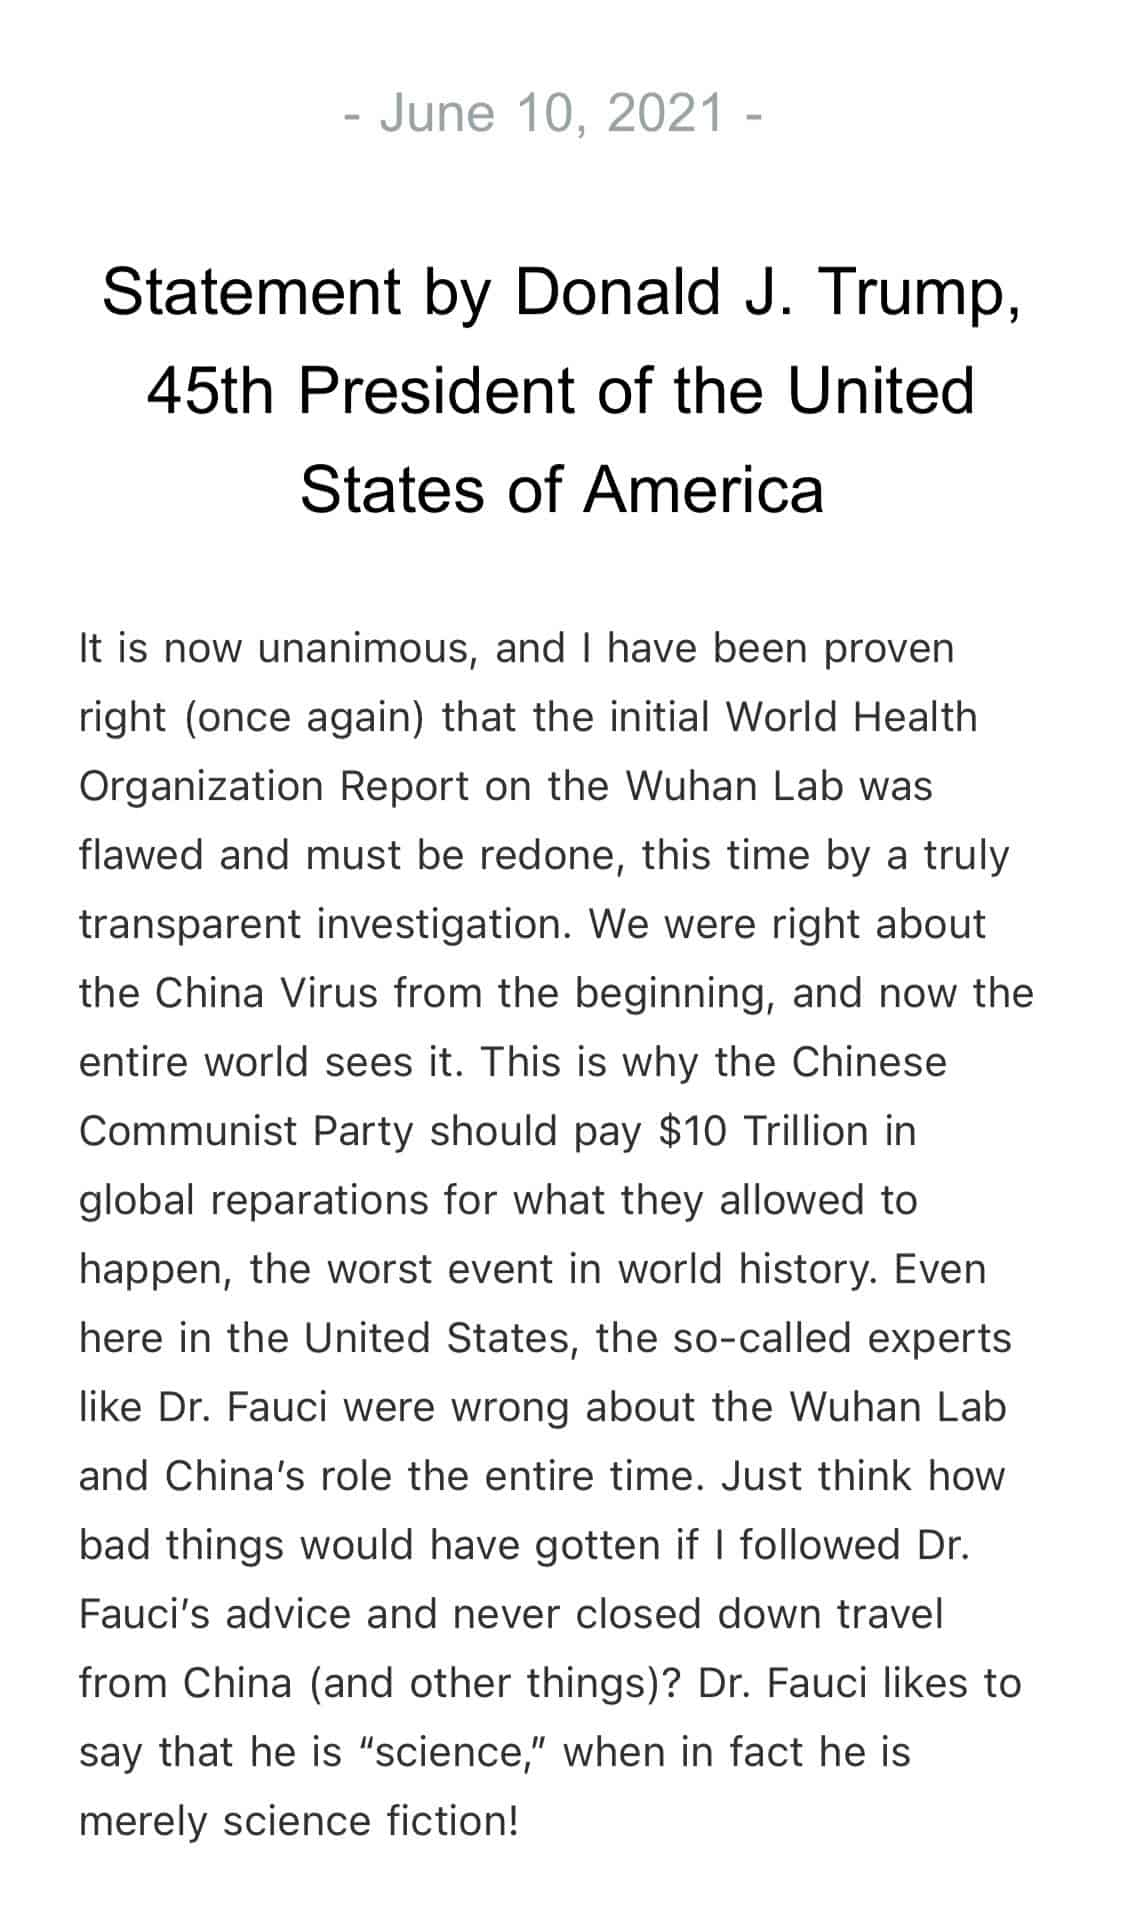 JUST IN – Trump says he has been proven right that WHO report on Wuhan Lab was f